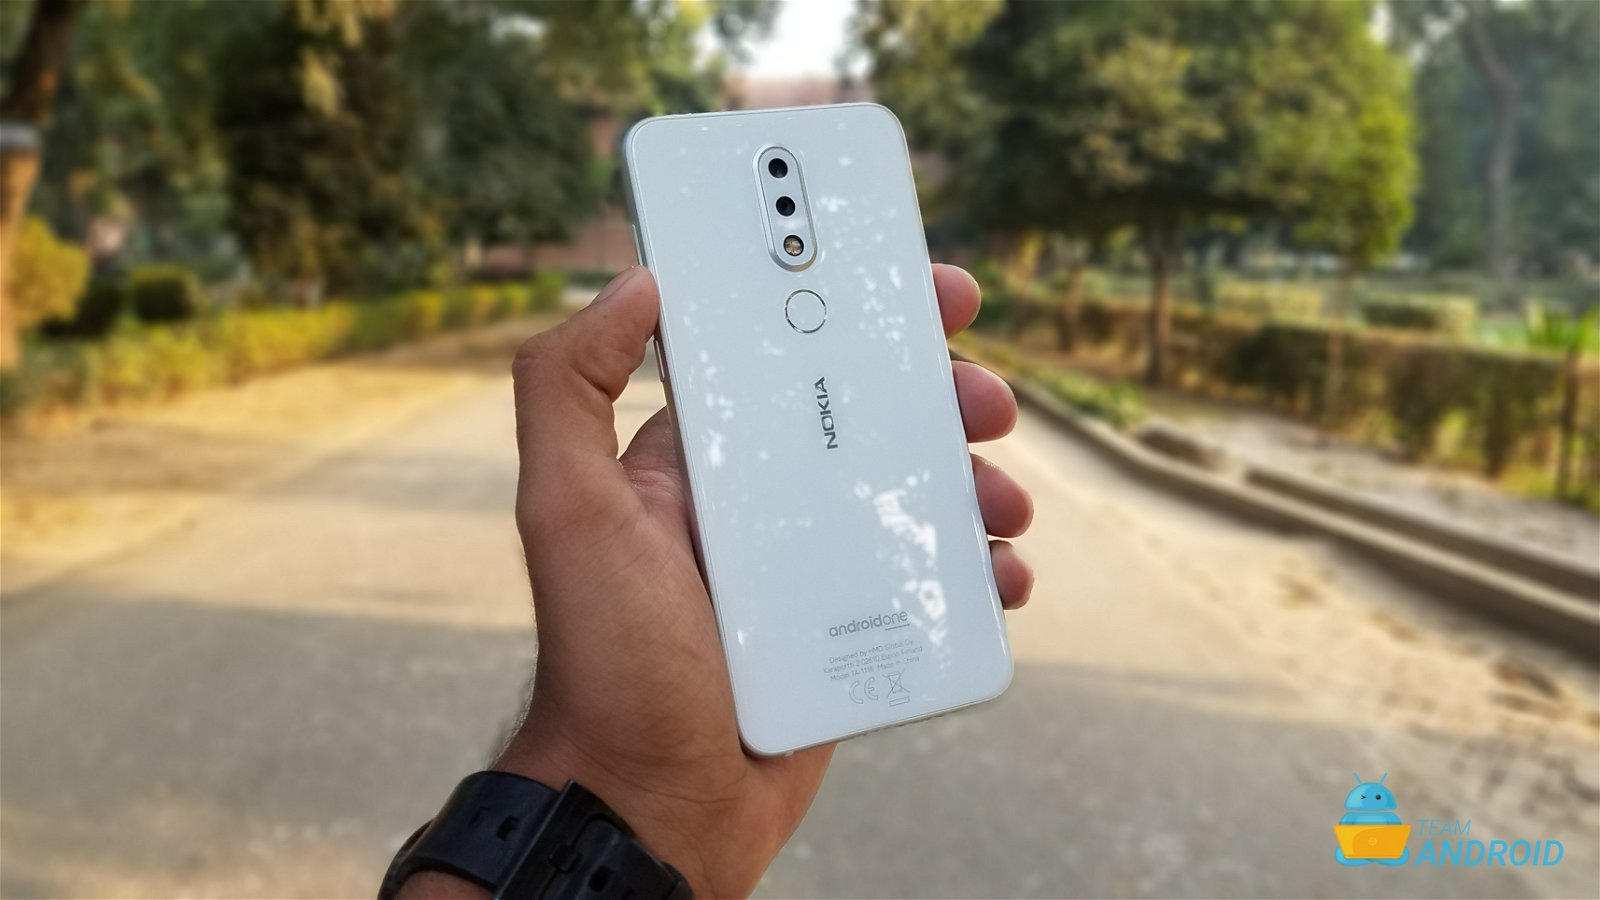 Nokia 6 Review: Premium Android Phone at Affordable Price